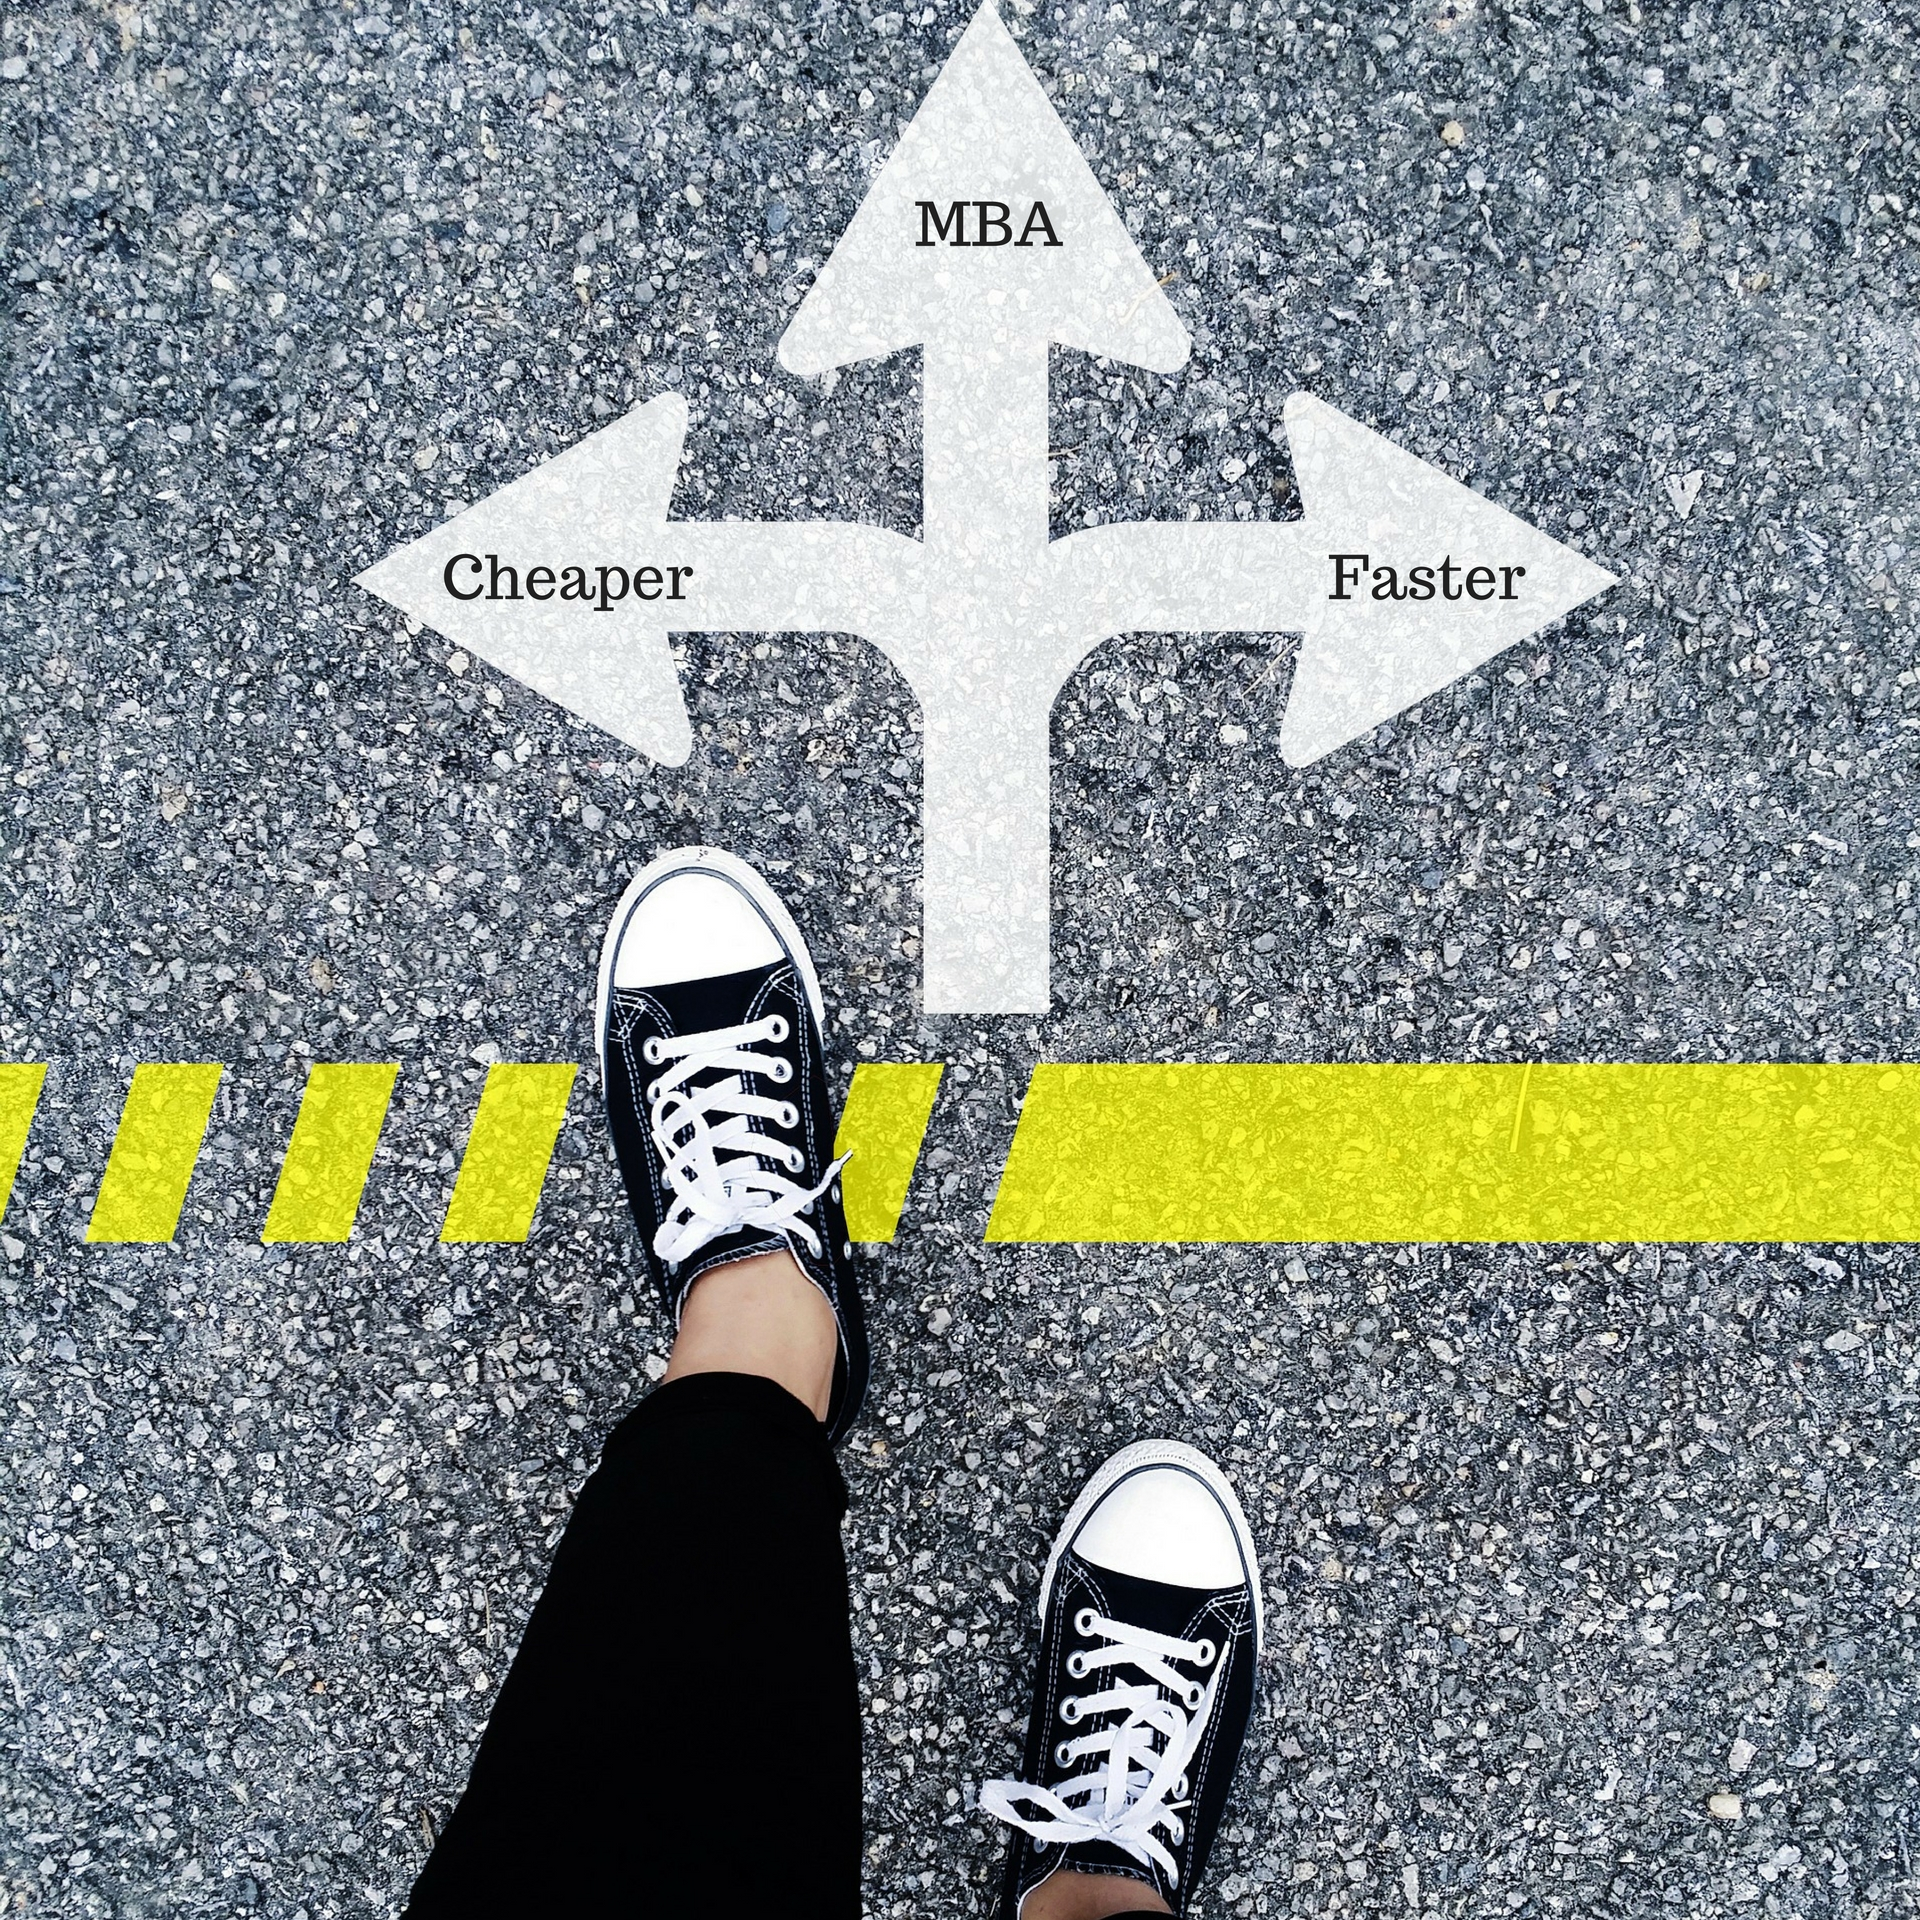 Alternative routes to MBA